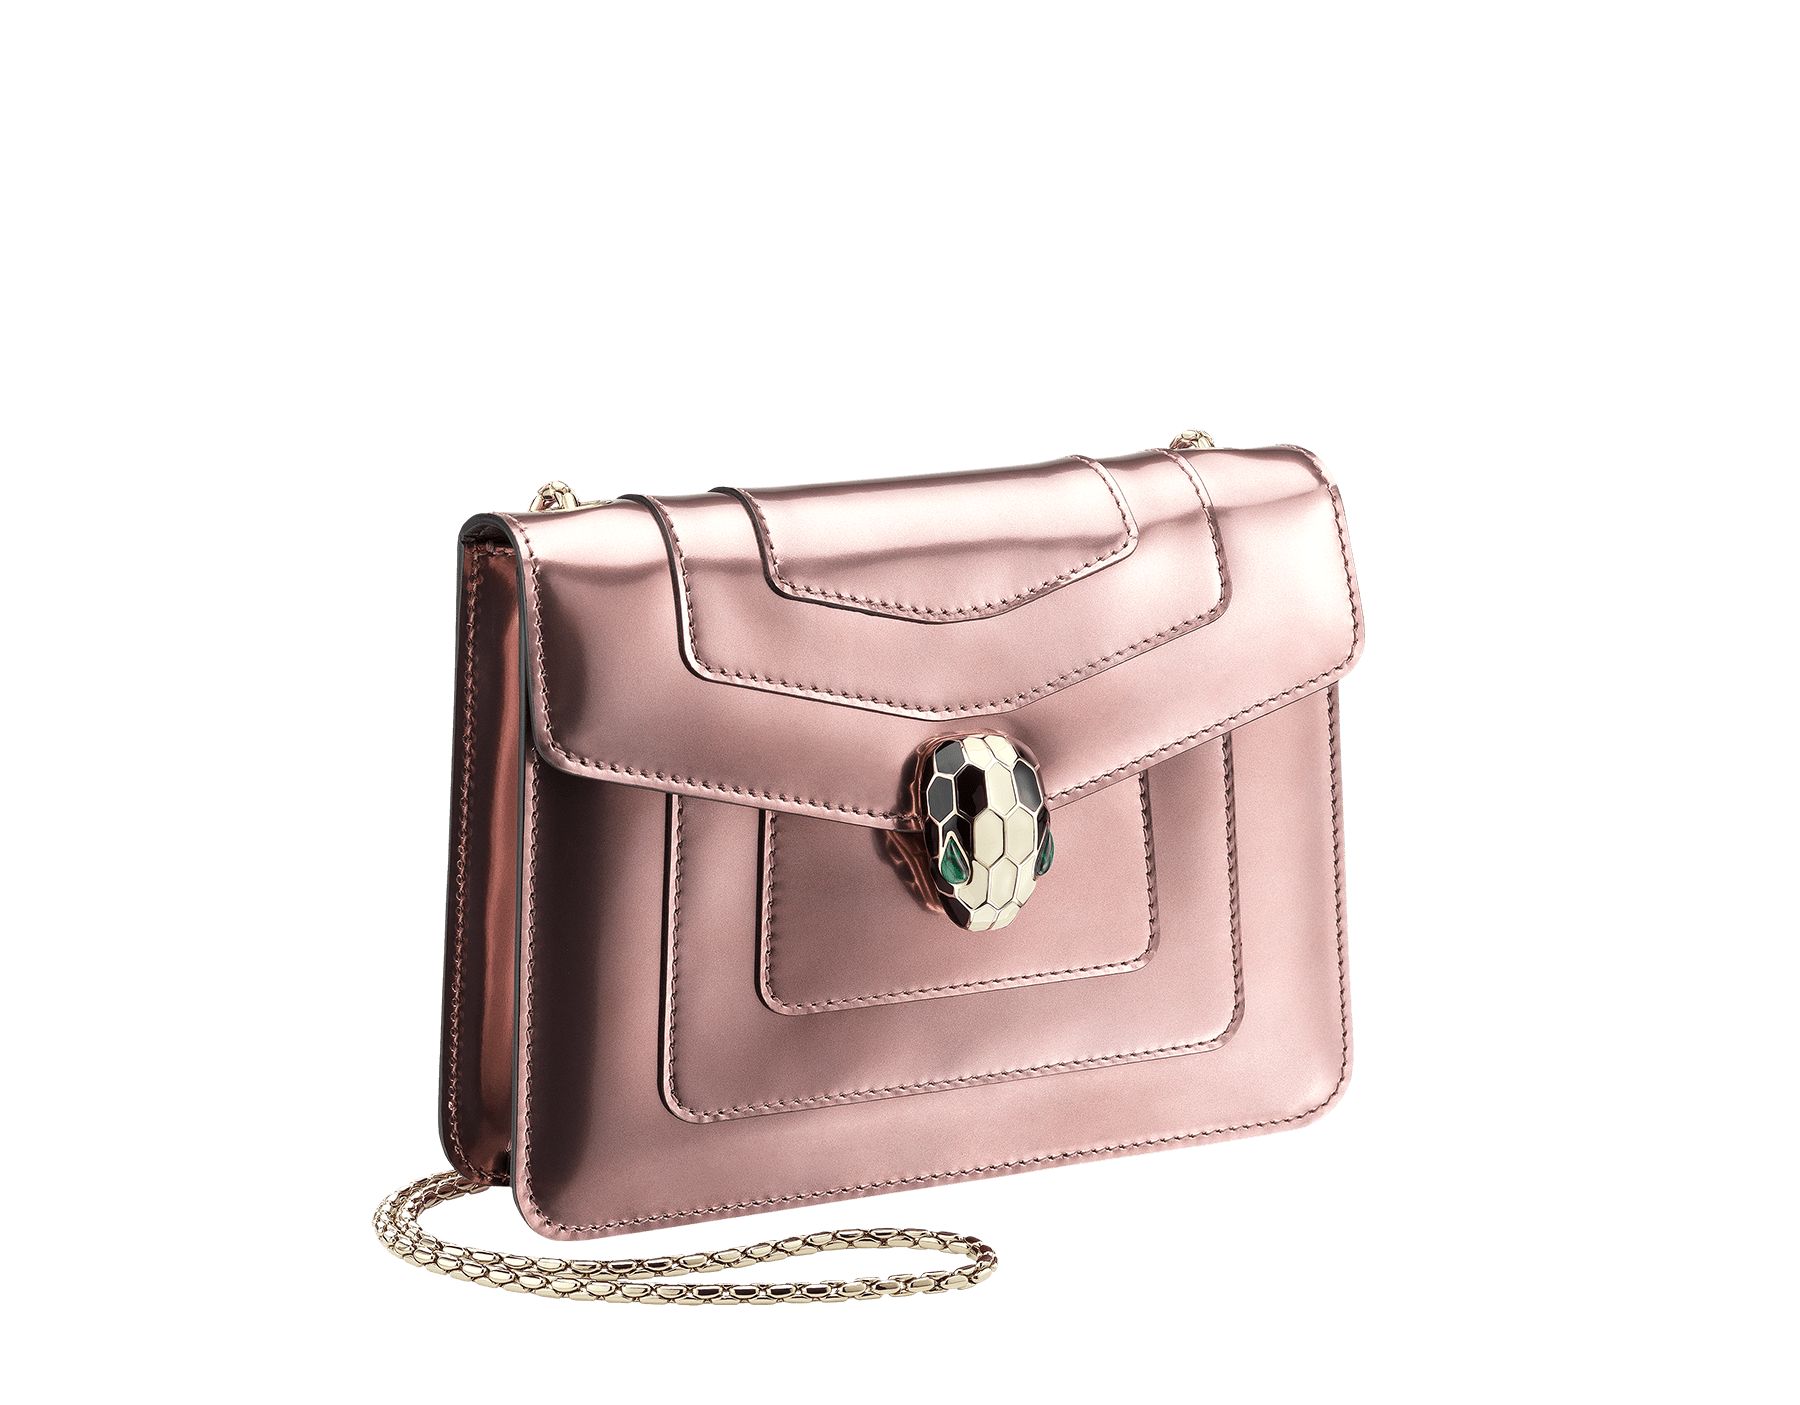 Flap cover bag Serpenti Forever in rose quartz brushed metallic calf leather. Brass light gold plated tempting snake head closure in black and white enamel, with eyes in green malachite. 422-BMCLb image 2